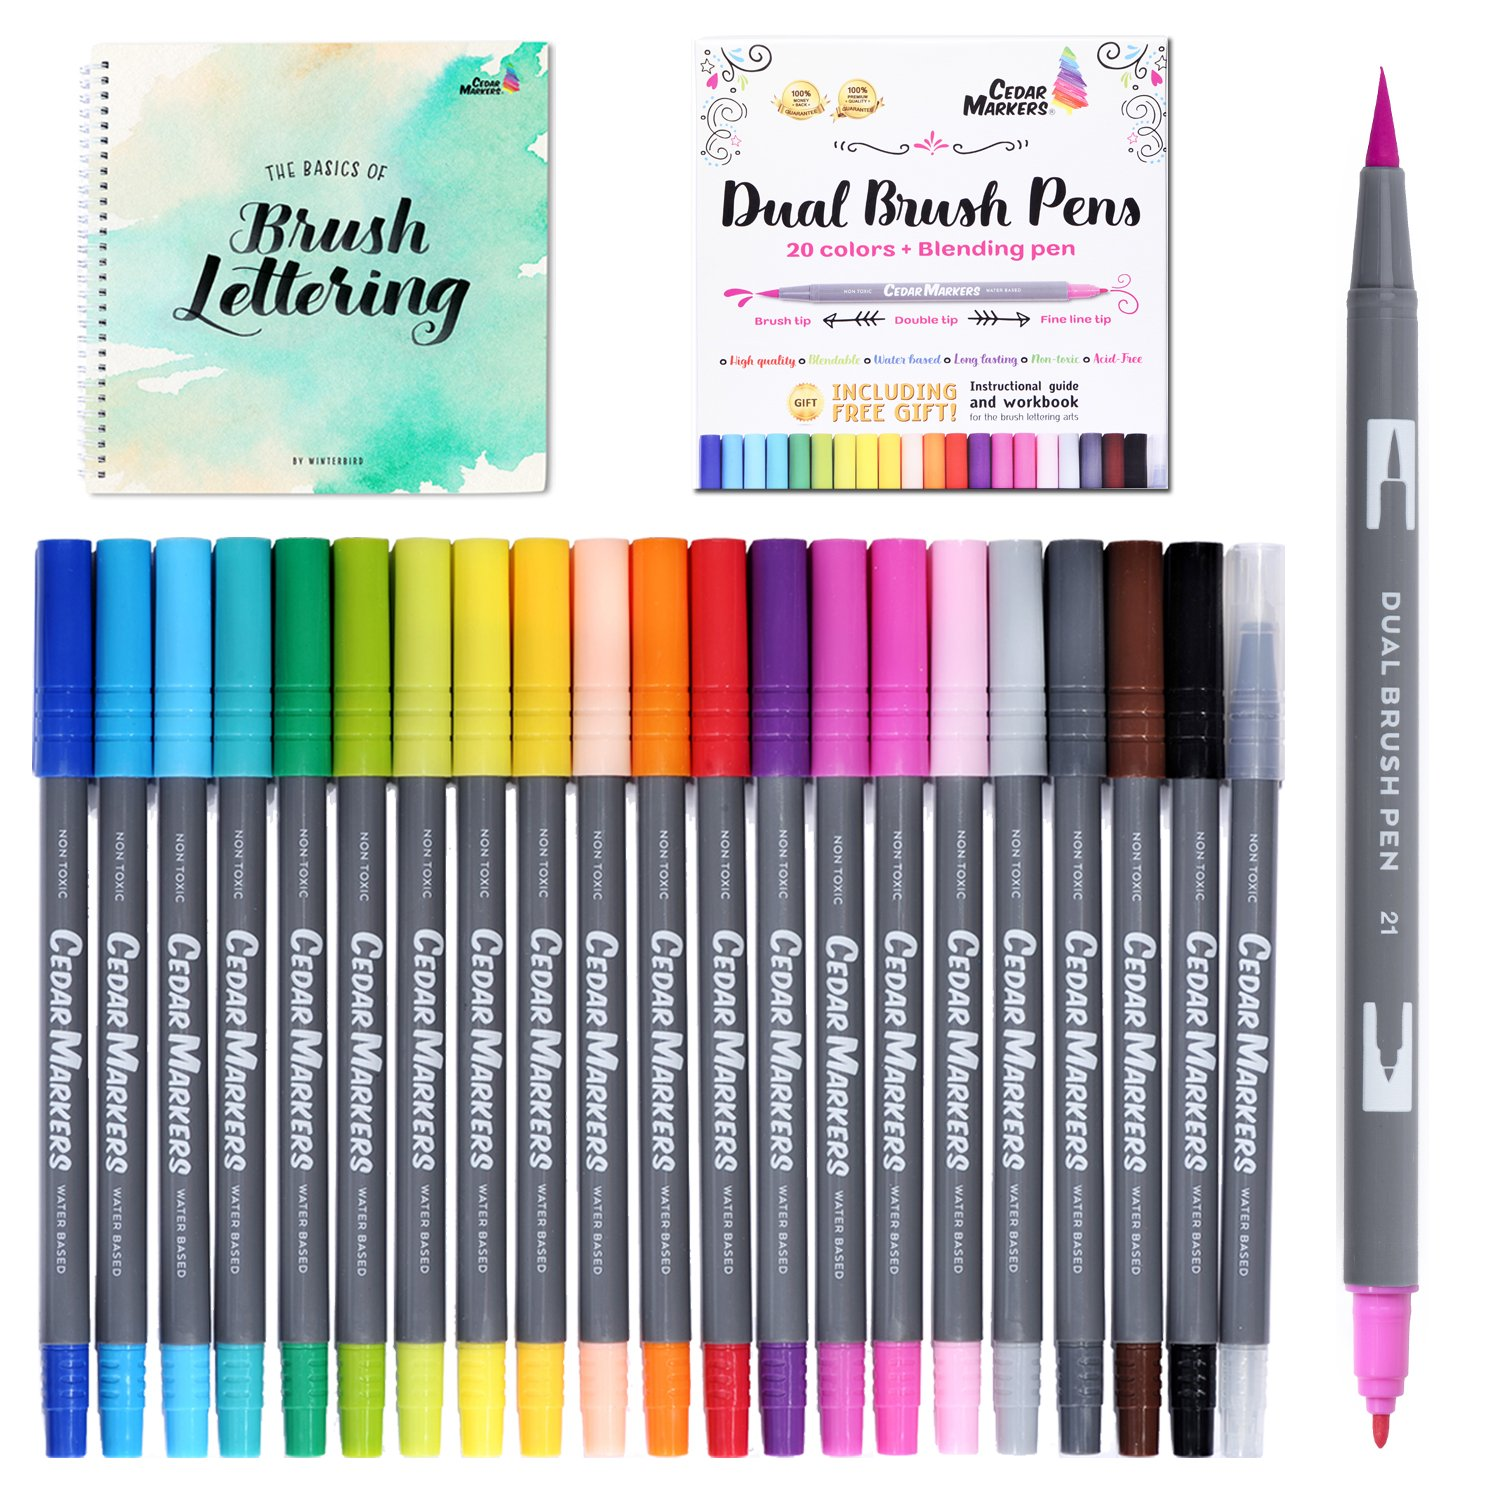 Dual Brush Pens. 21 Calligraphy Pen Set with Best Hand Lettering Guide  Book. Fine Liner and Brush Tip Markers. Colored Pens, Art Pens for Adult ...